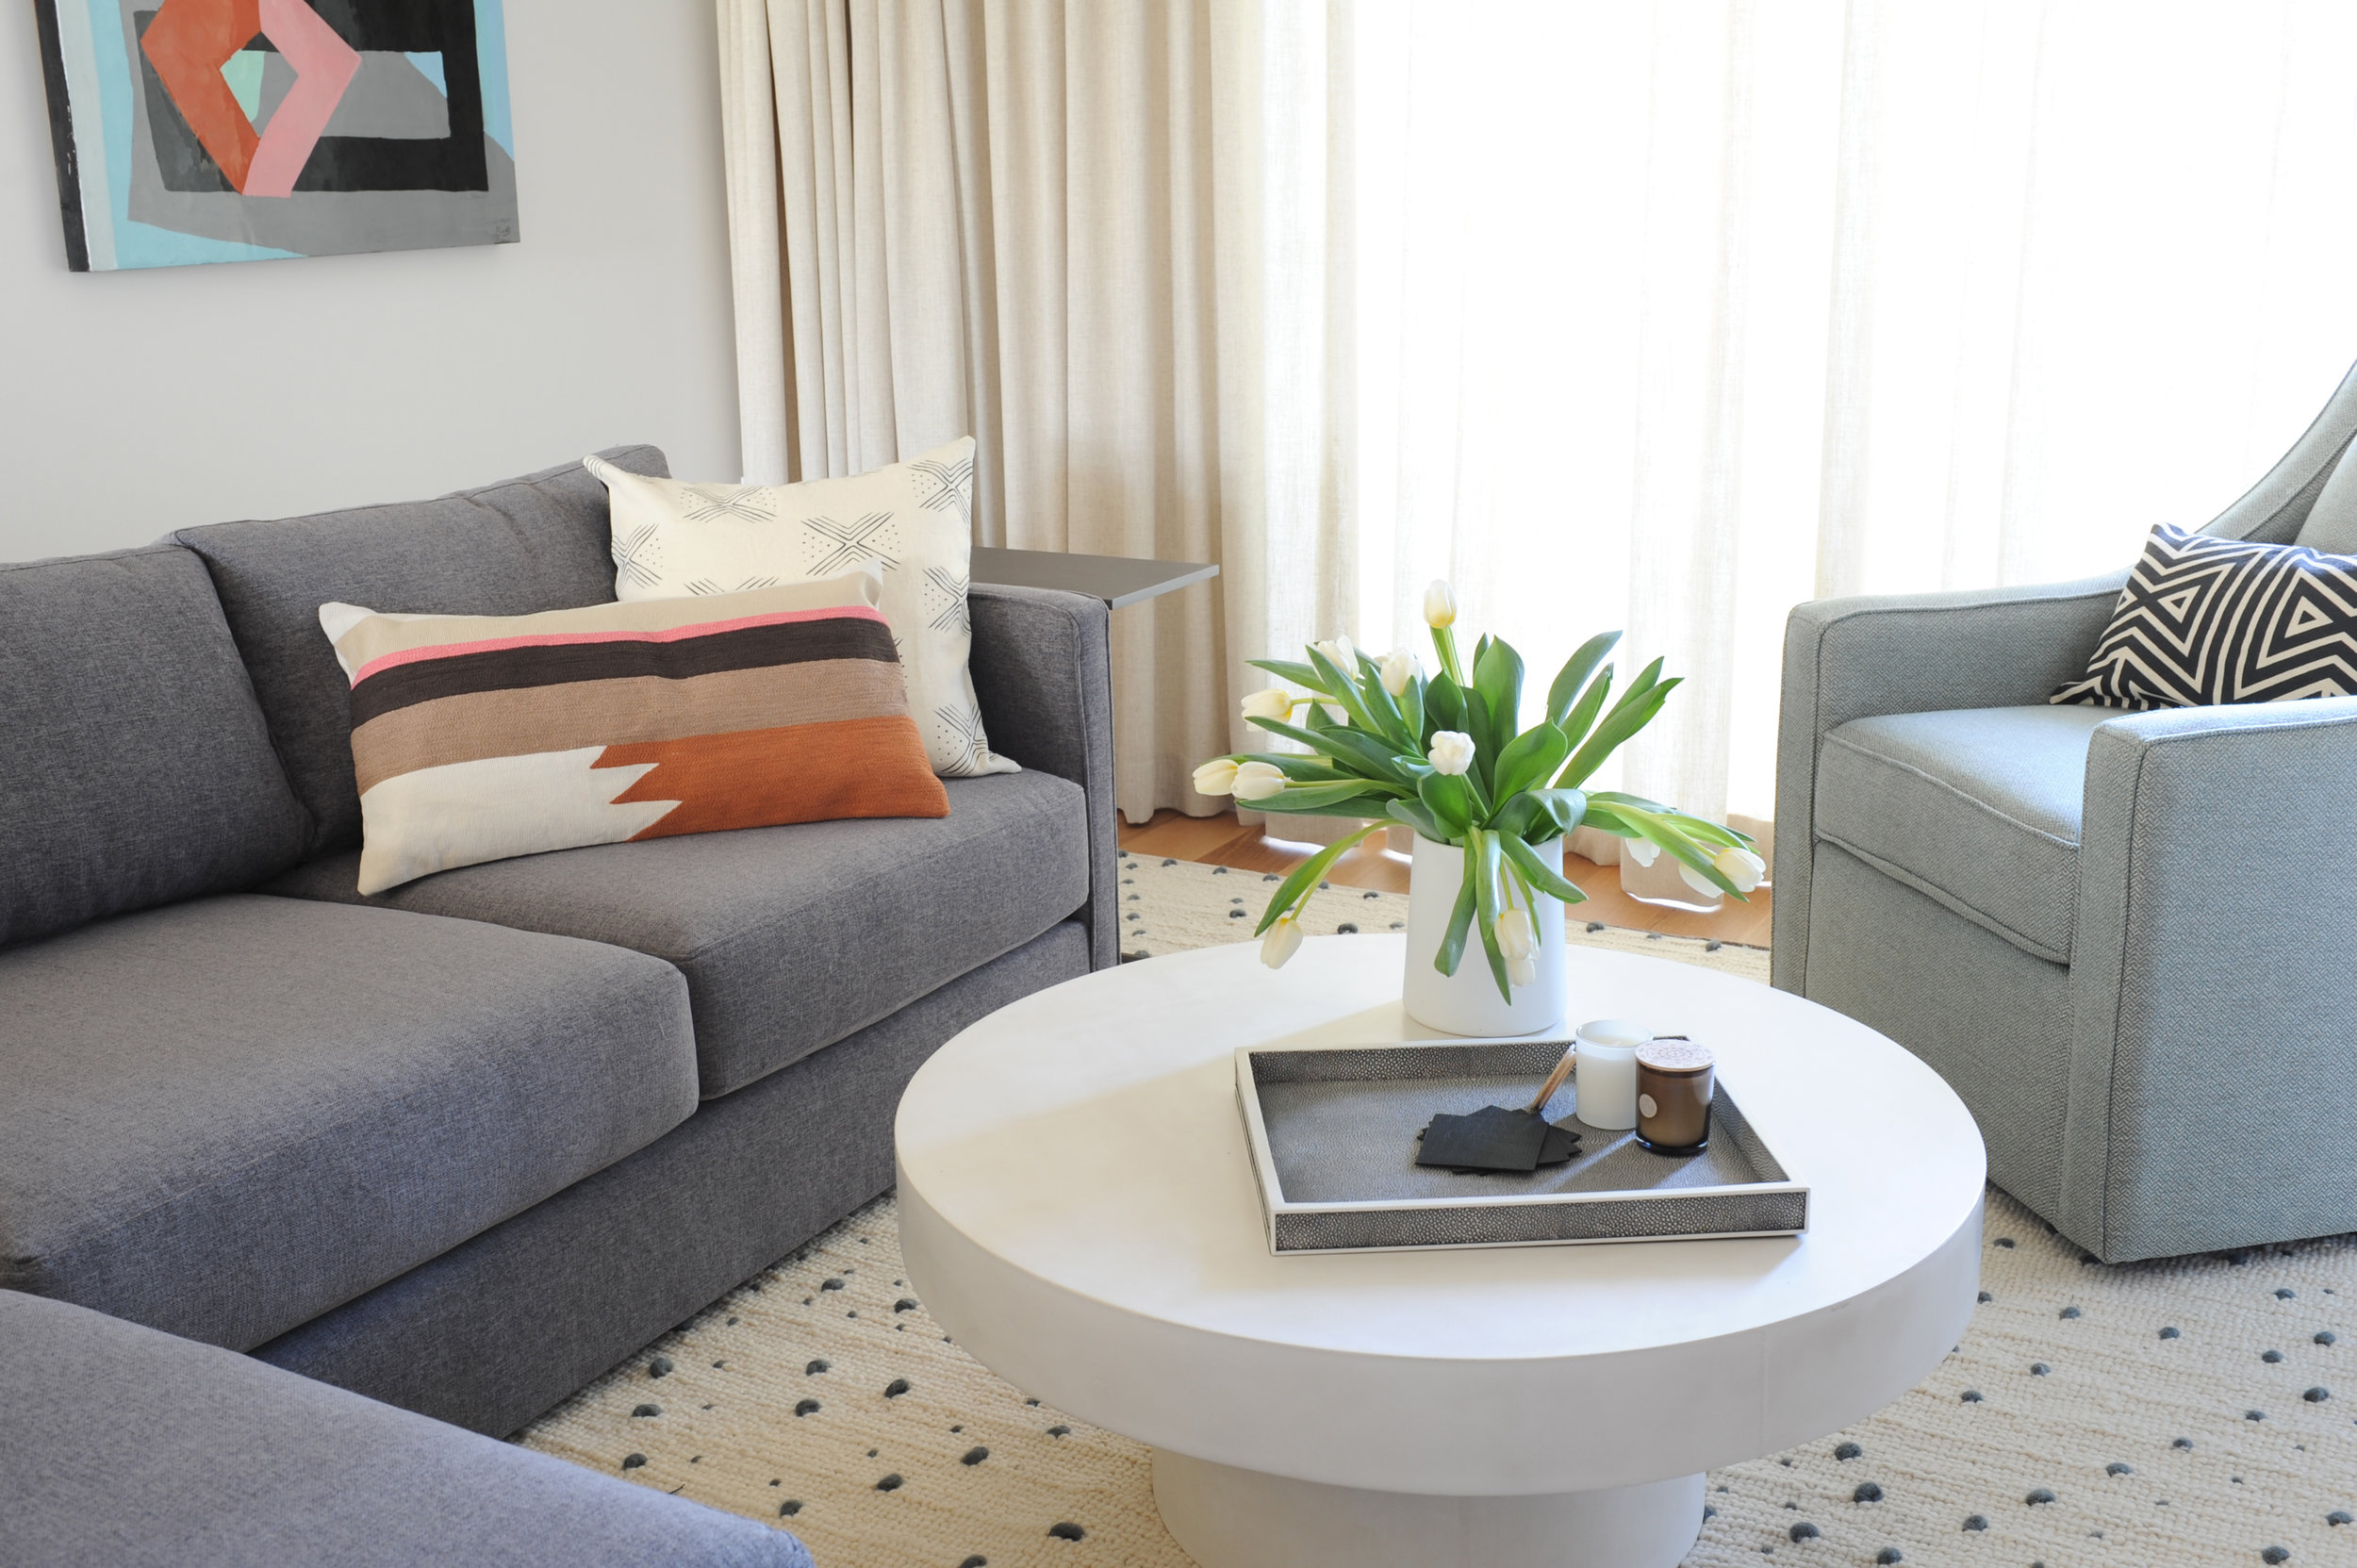 A white coffee table sits on a beige rug surrounded by a grey sectional and a light grey armchair.